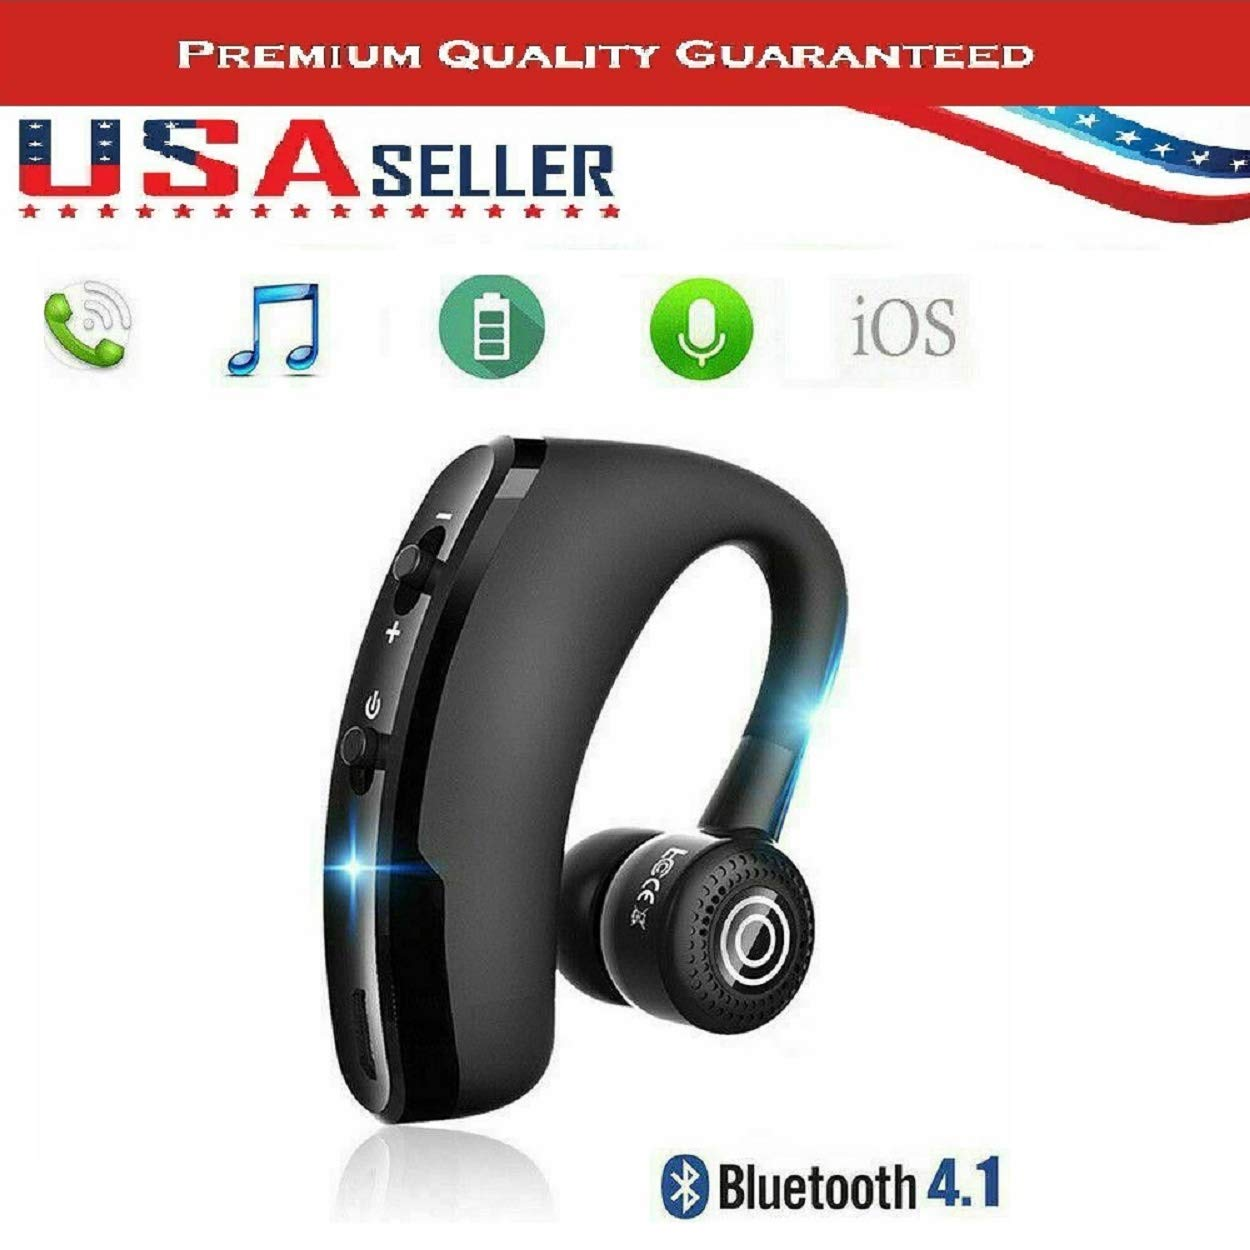 Wireless V9 Business Bluetooth CSR Headset/Earphone Voice Control V4.1 Phone Handsfree MIC Music for iPhone Huawei Samsung and Xiaomi with NFC Function